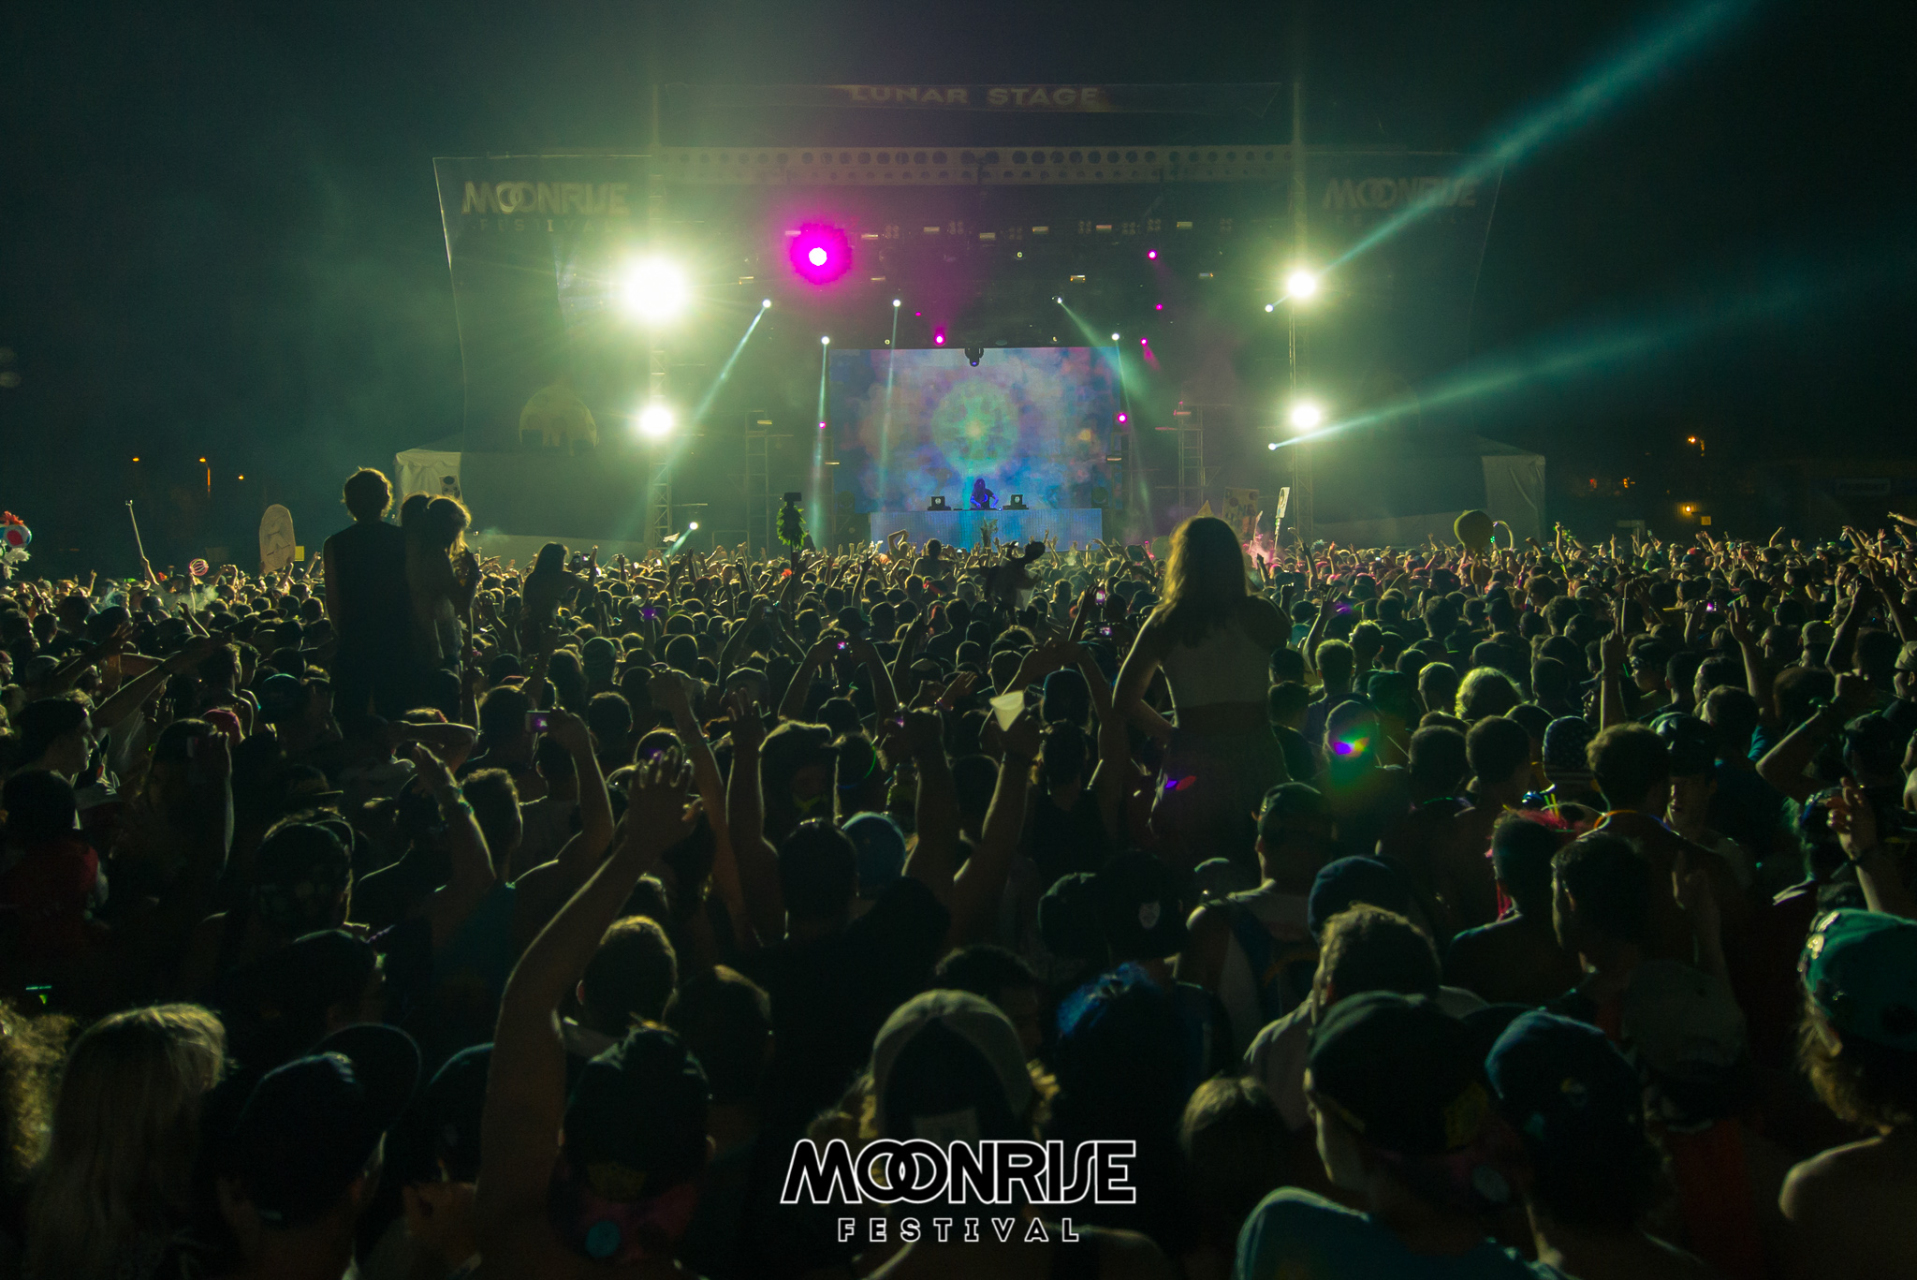 Moonrise_day2-117